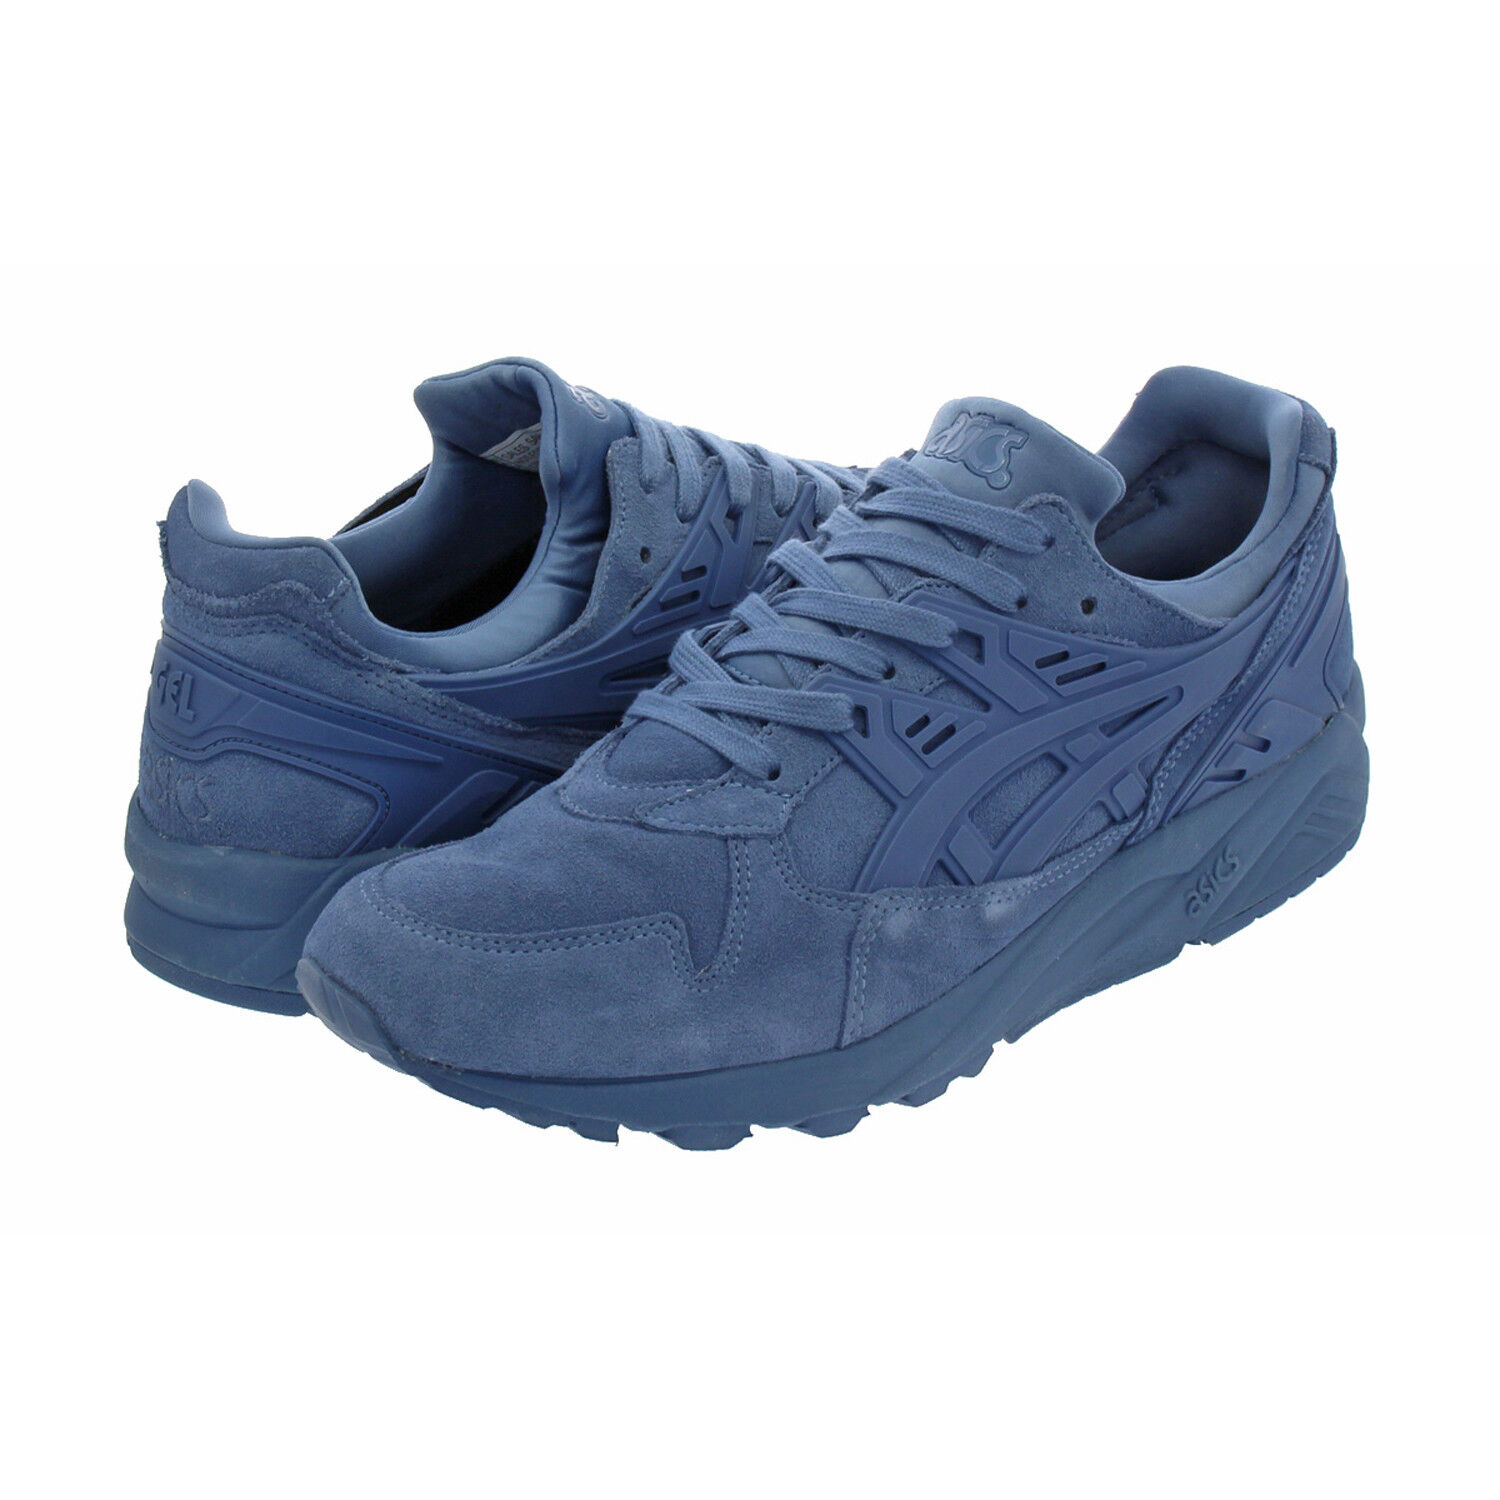 Asics Gel-Kayano Men's Trainer Pigeon bluee Sneaker shoes HL7X1-4646